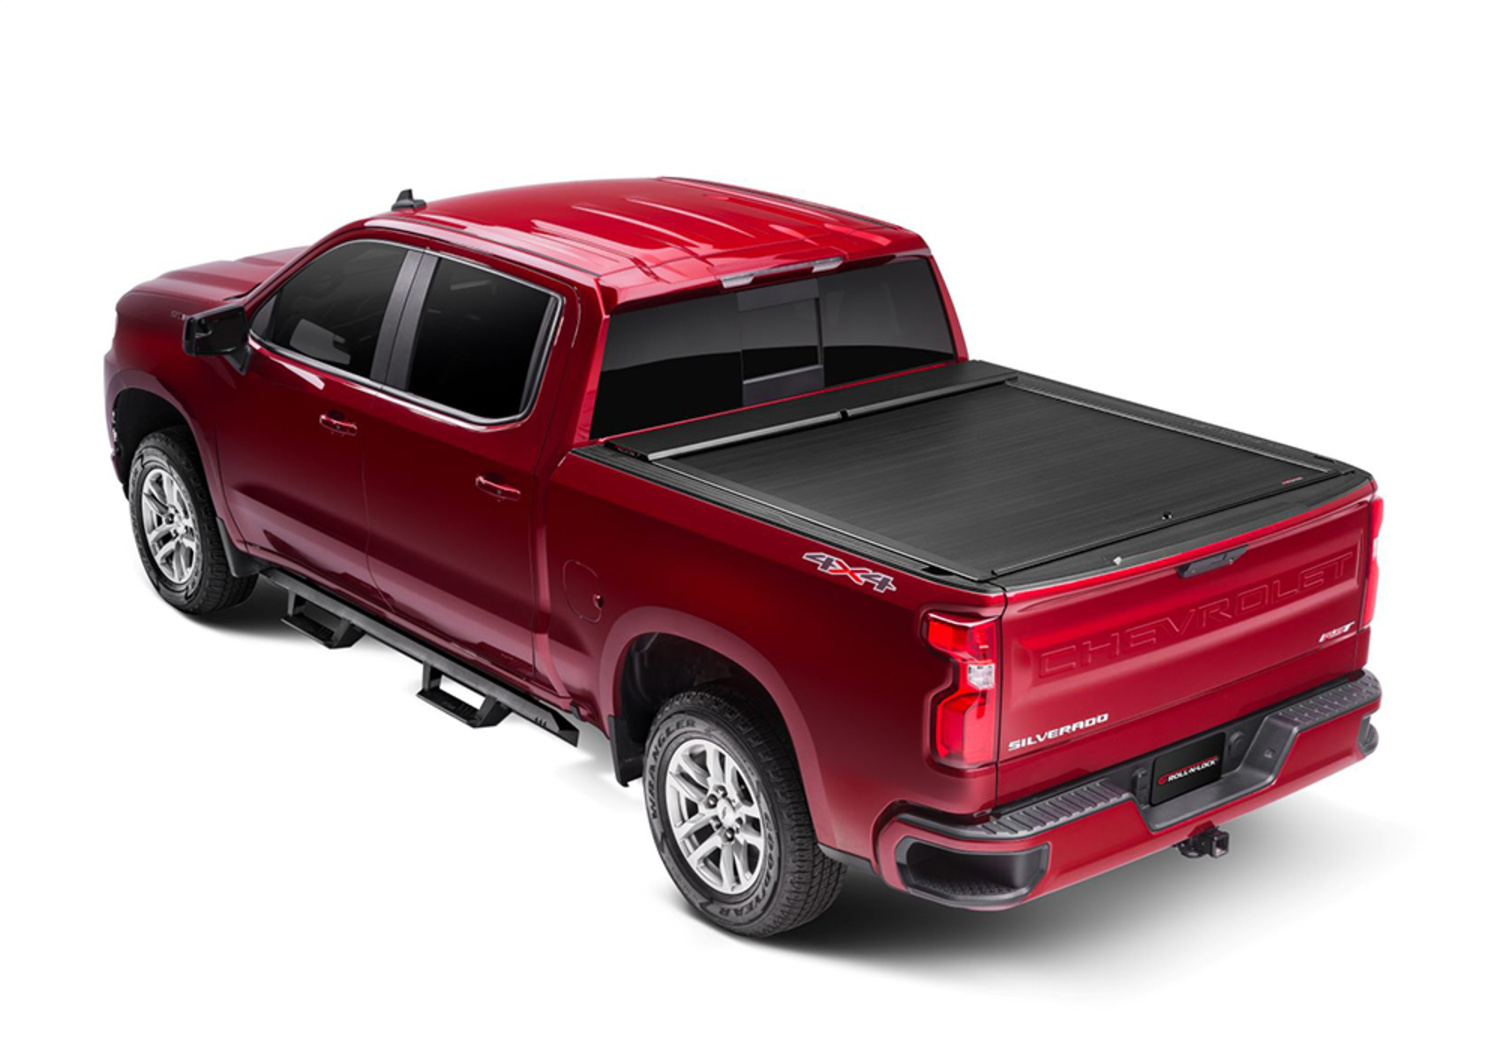 Roll-N-Lockr A-Series Truck Bed Cover